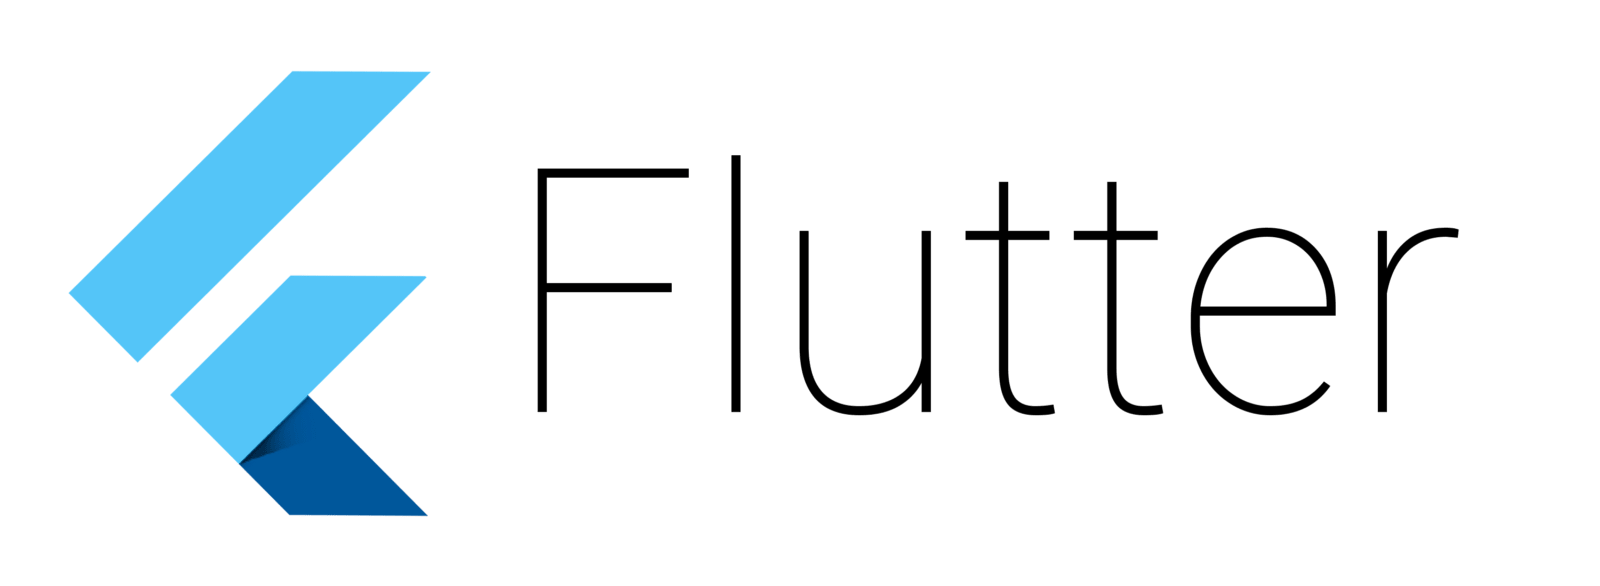 flutter text icon